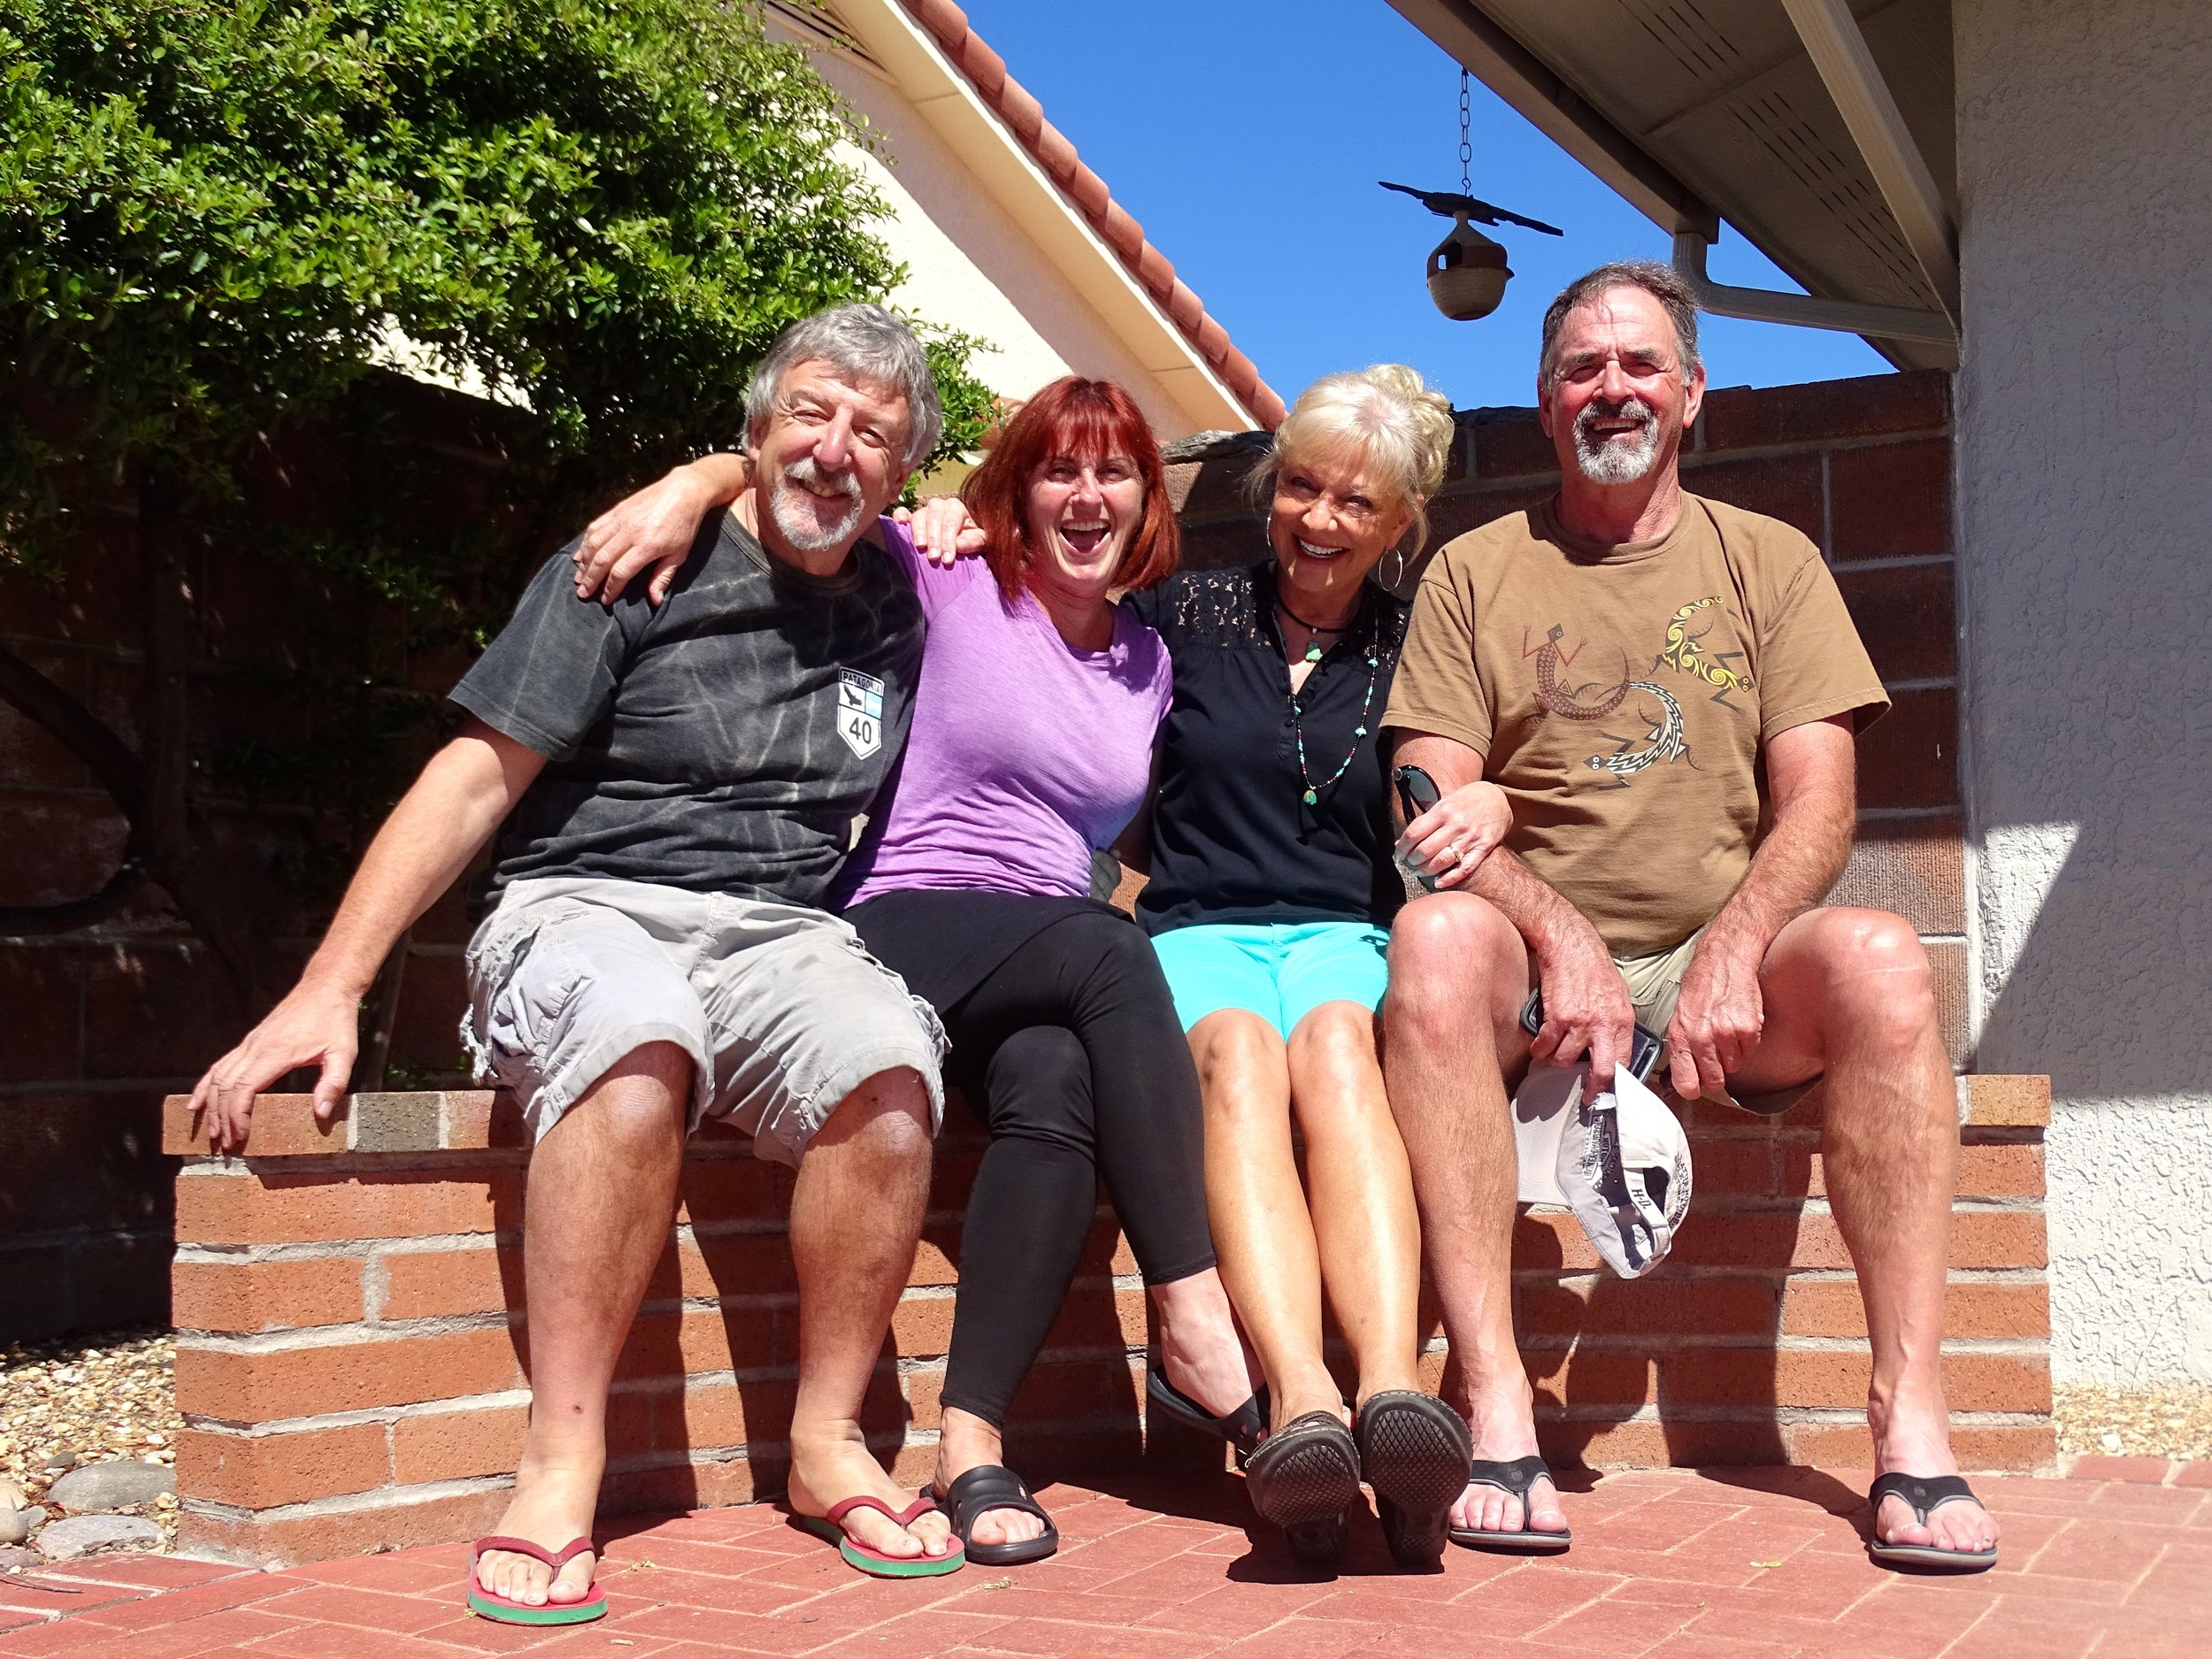 Keith, me, Cindy, and her husband Kevin at their home in Tucson.